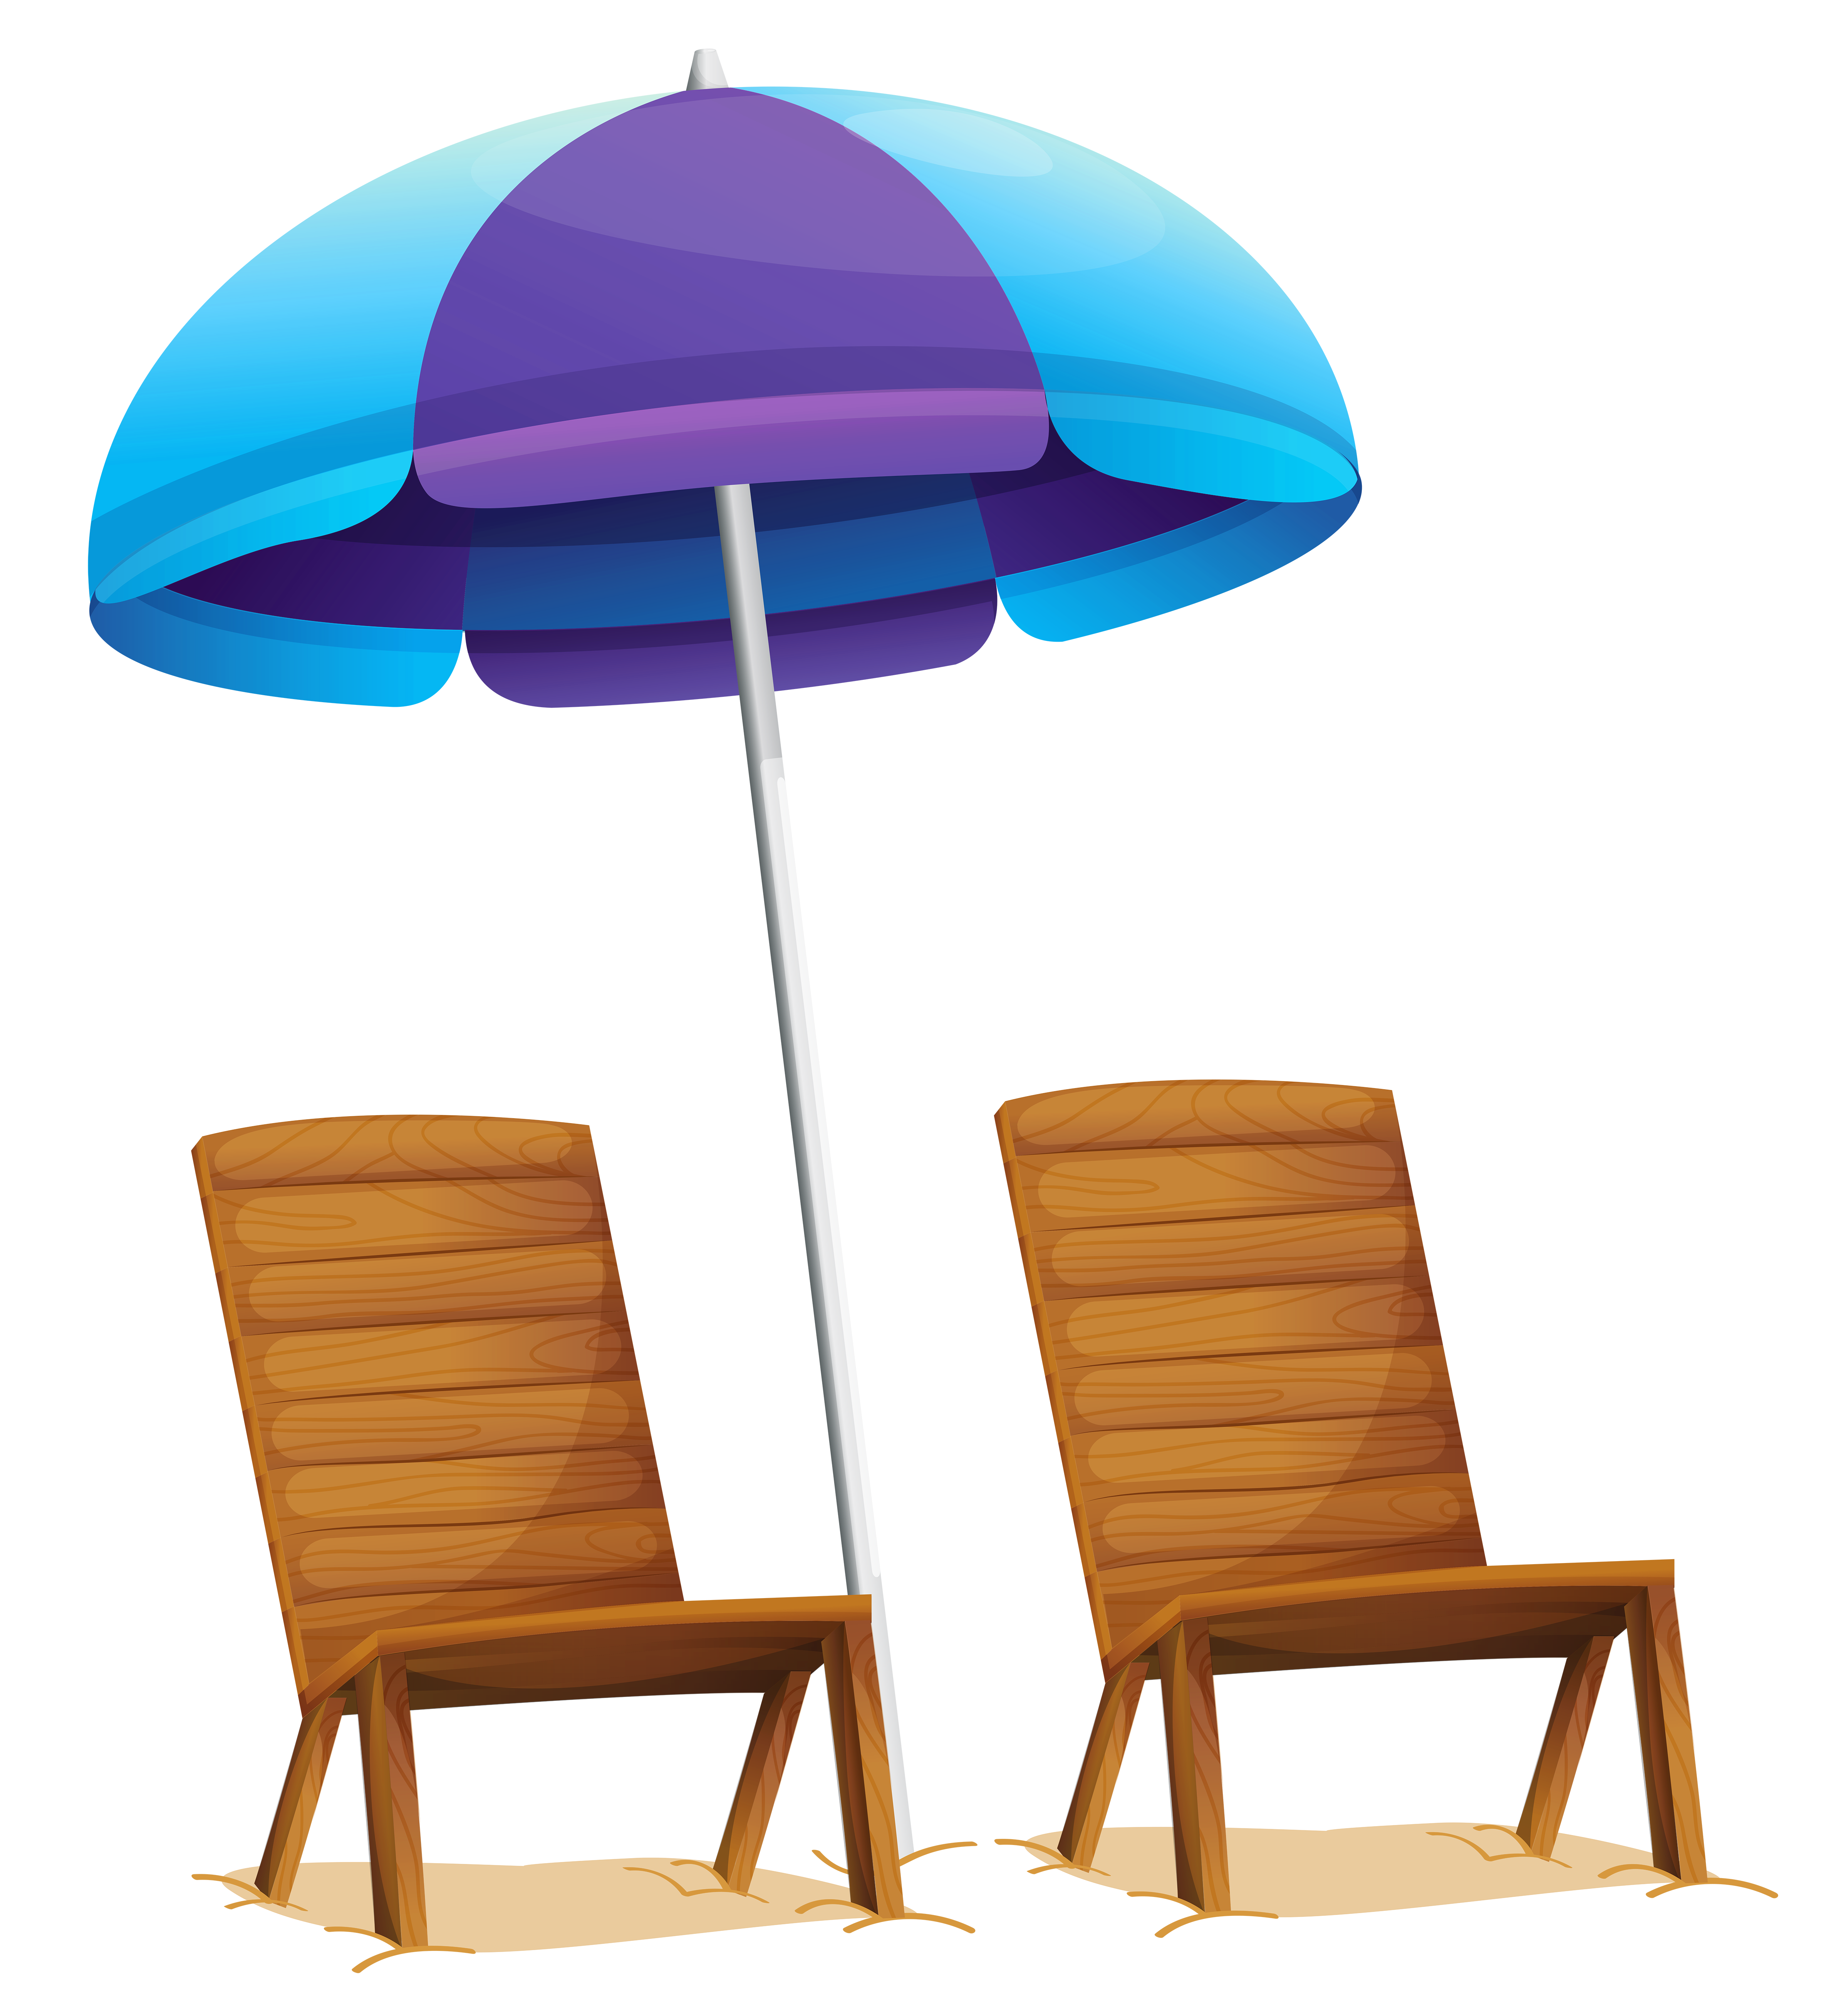 Beach Umbrella Clipart At Getdrawings Free For Personal Use